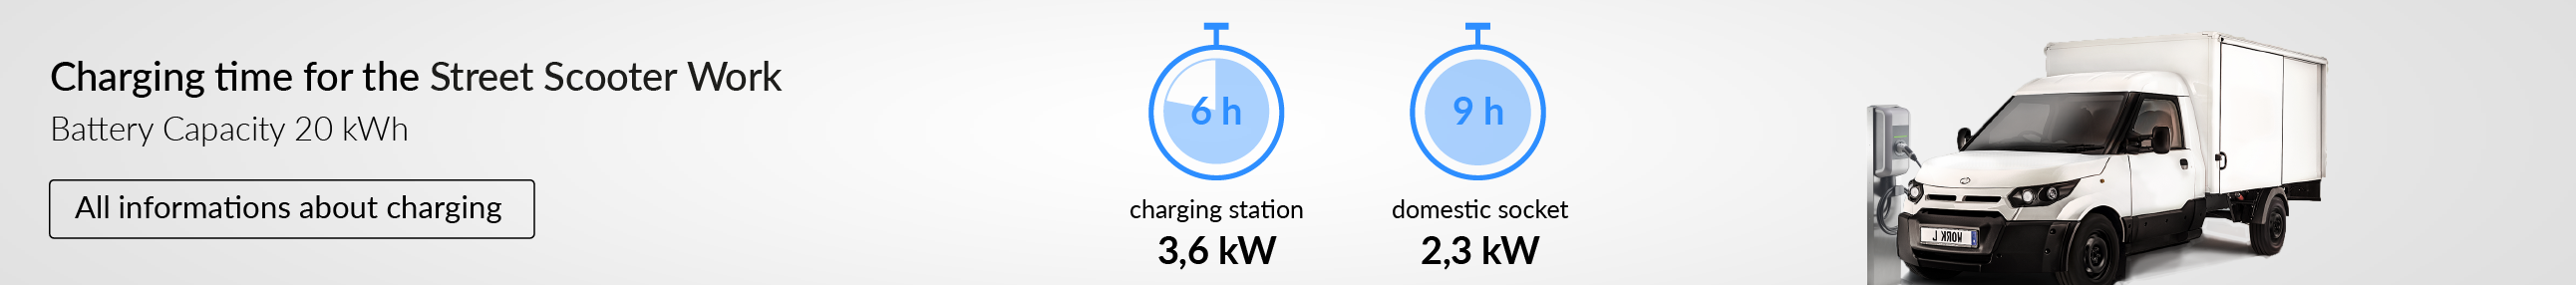 Charging times of the StreetScooter Work